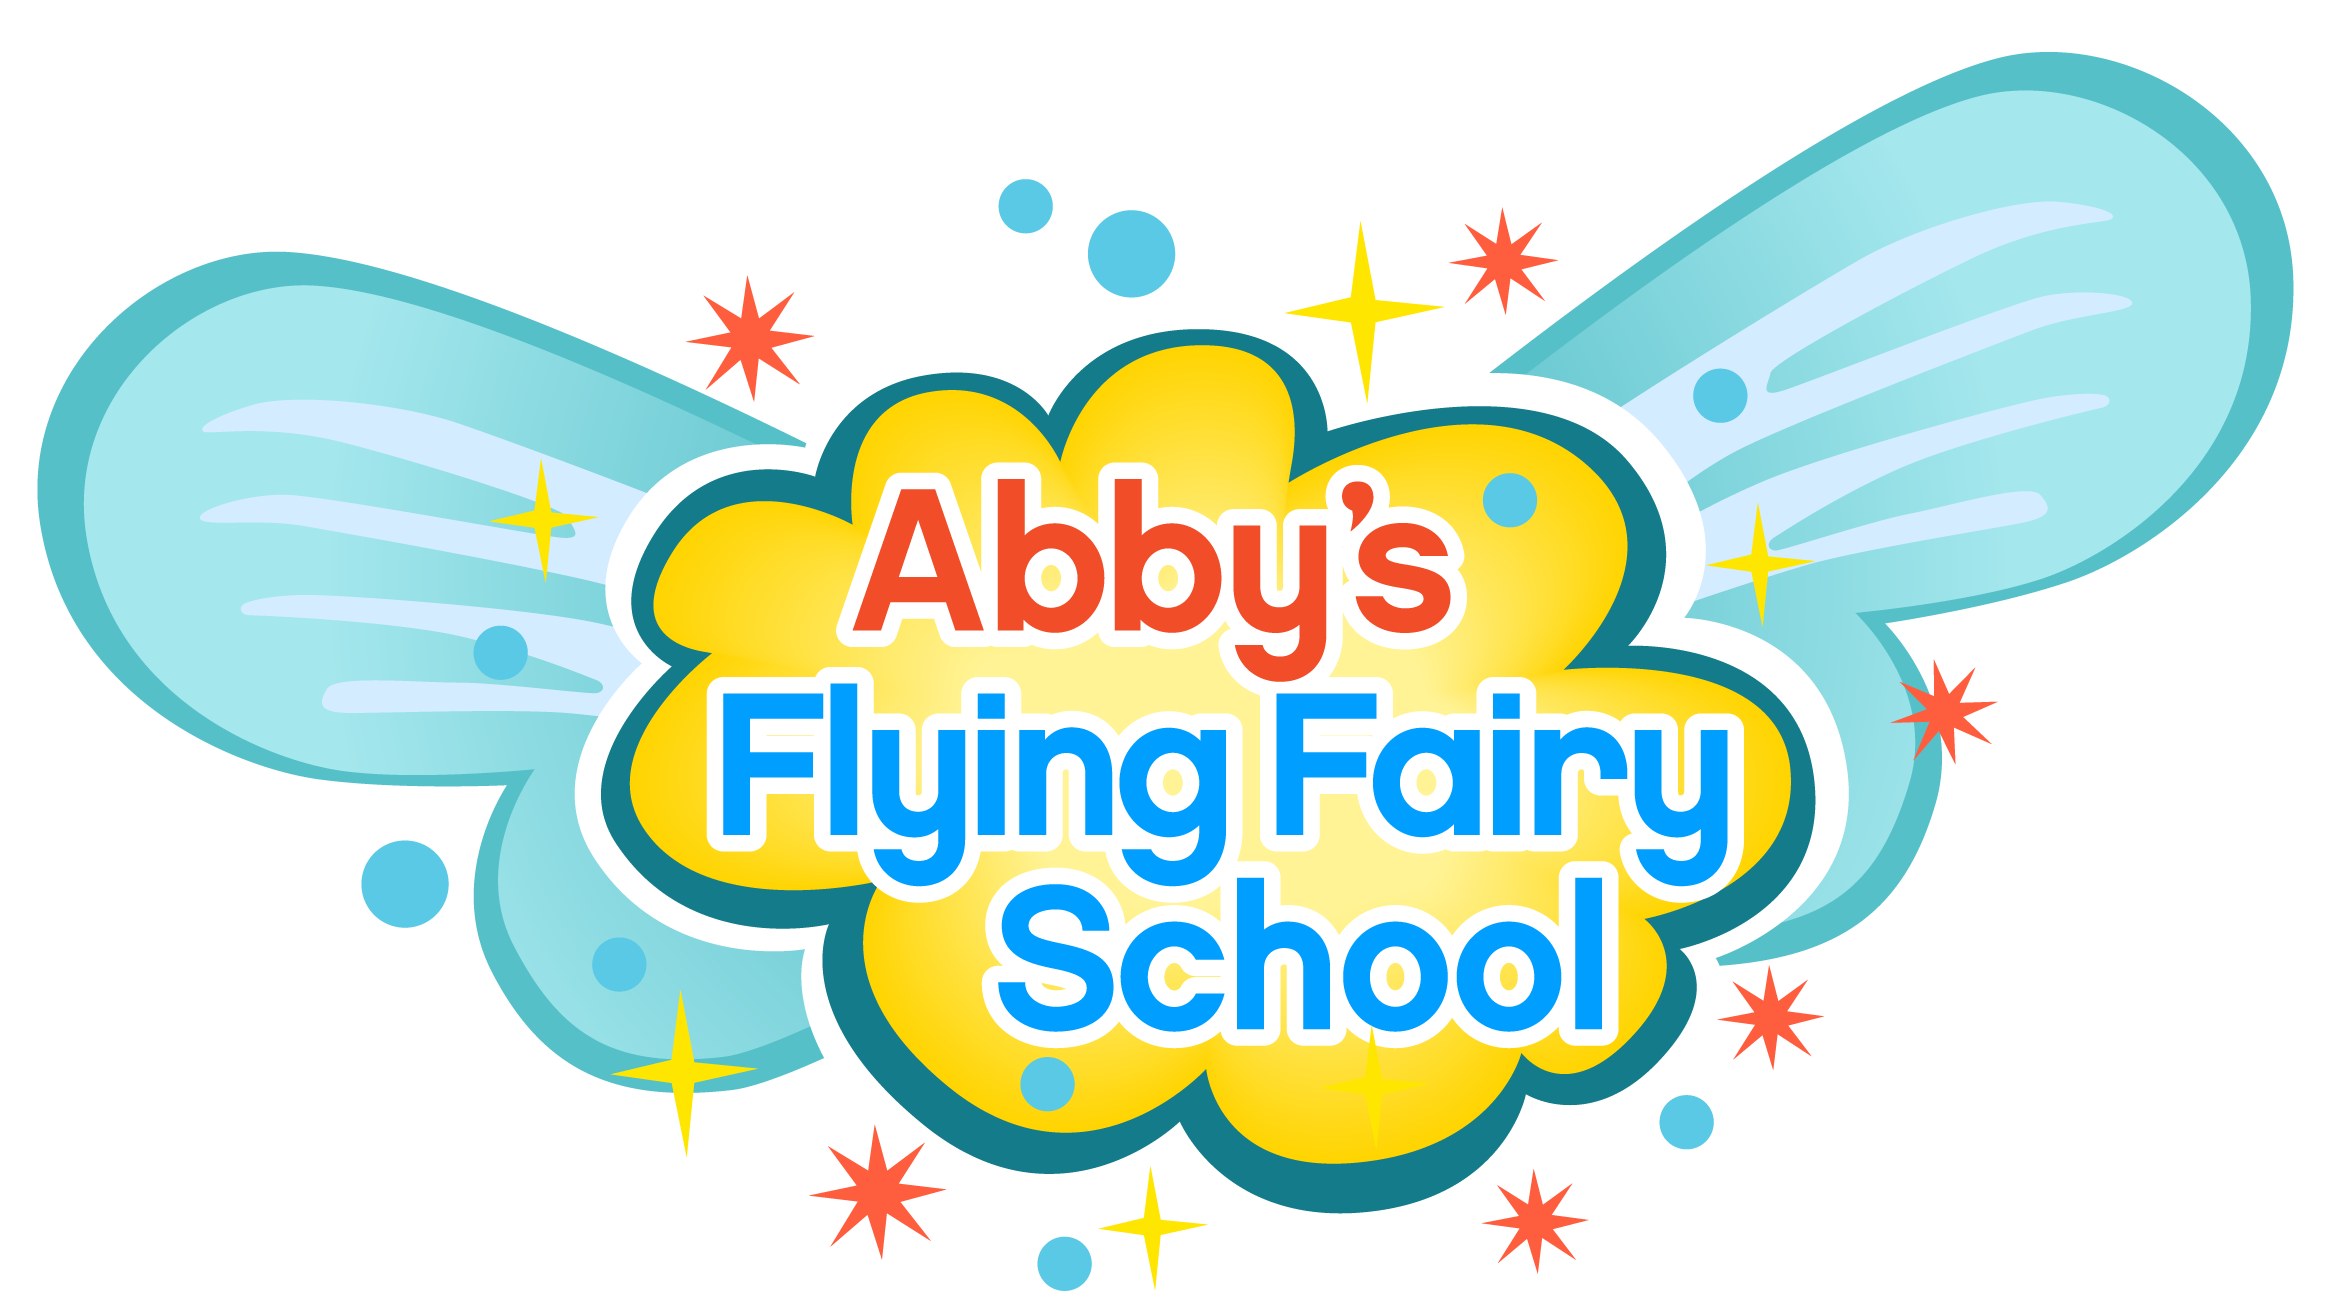 Abby's Flying Fairy School (logo)